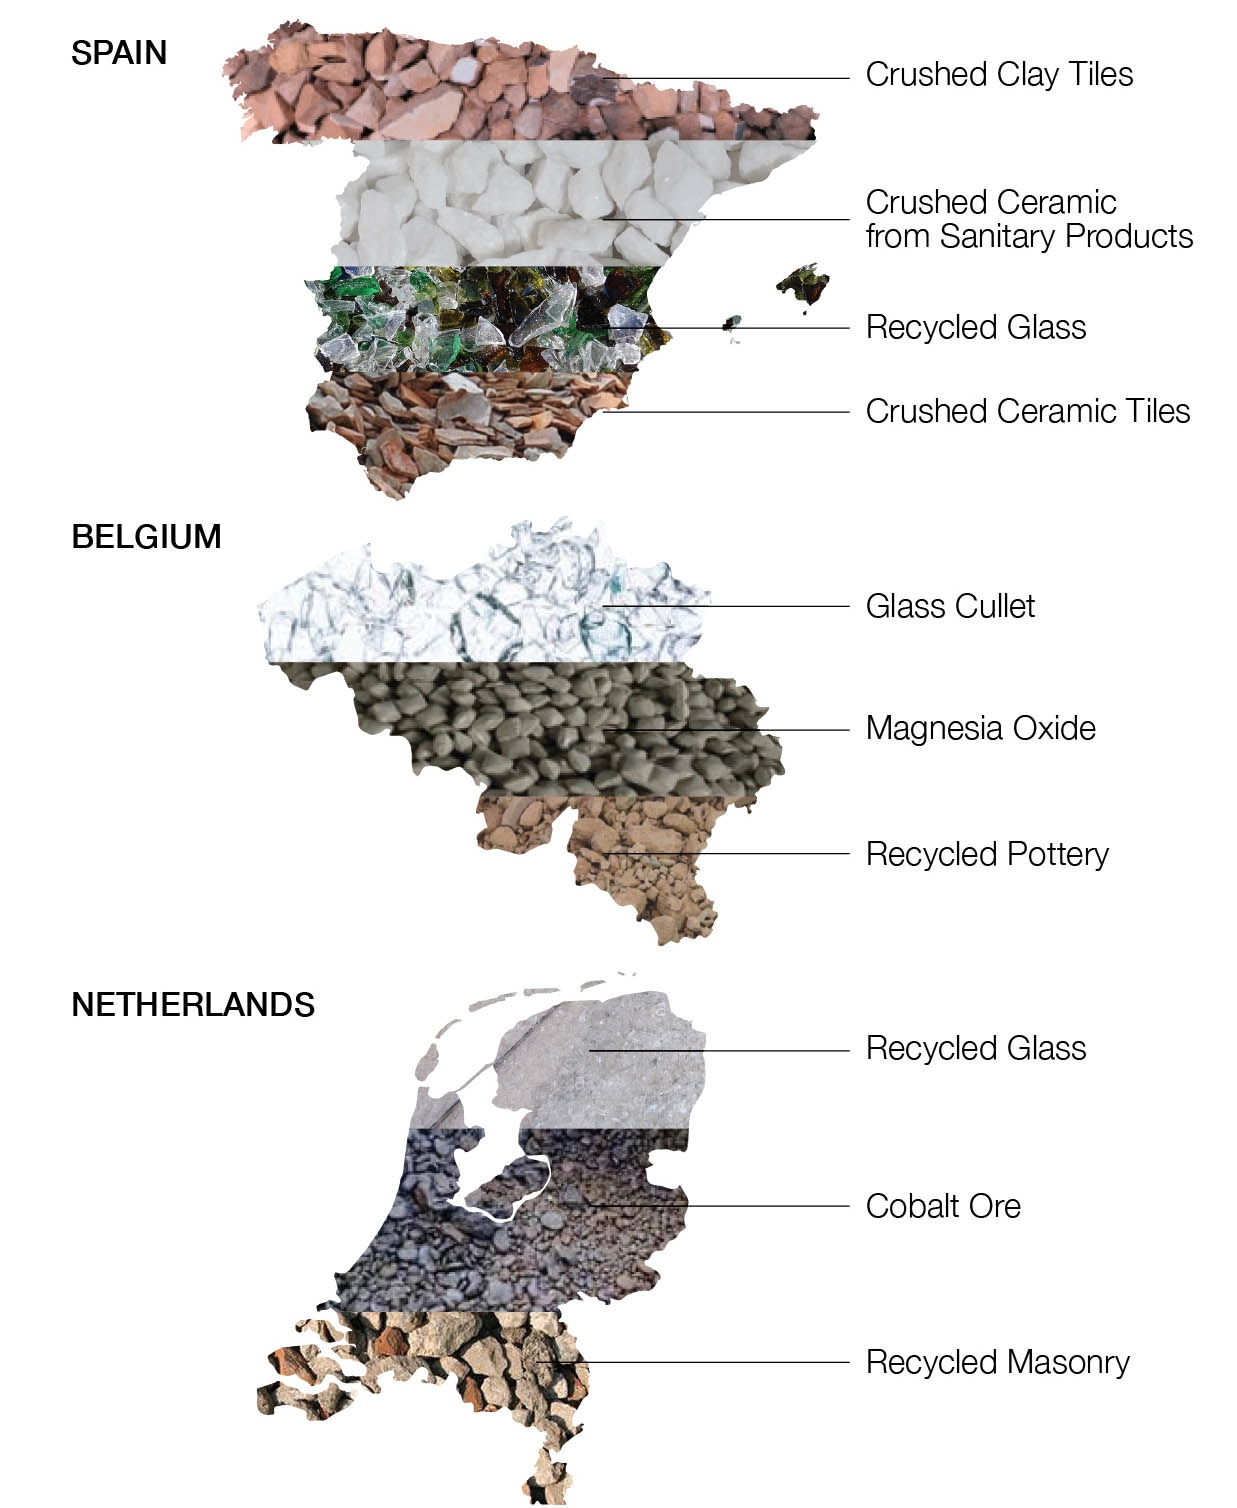 Material palette of a selection of aggregates from demolition waste